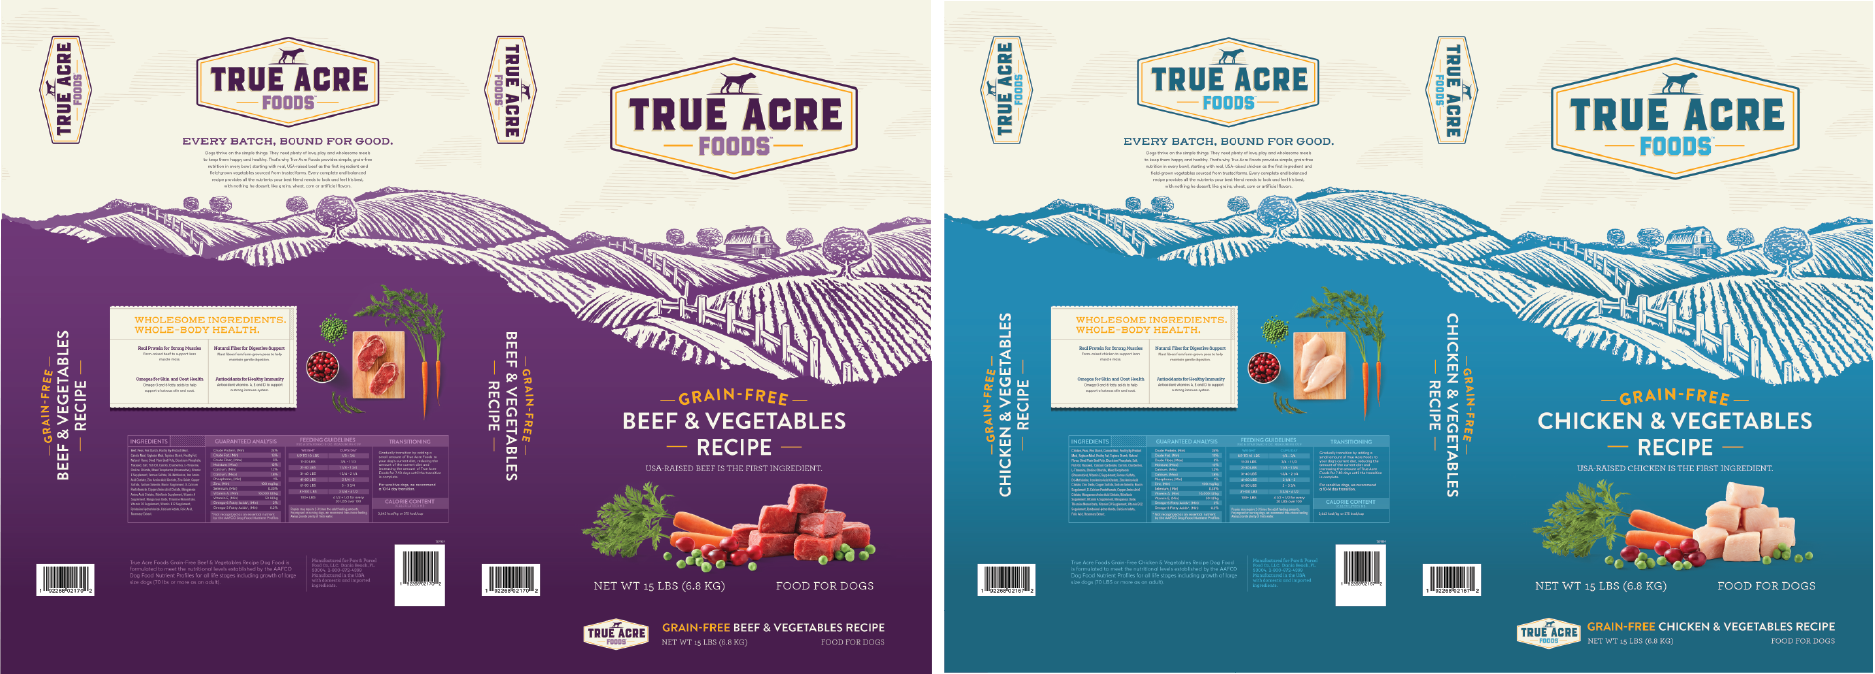 True Acre Foods Flattened Packaging | Designed by David Blank